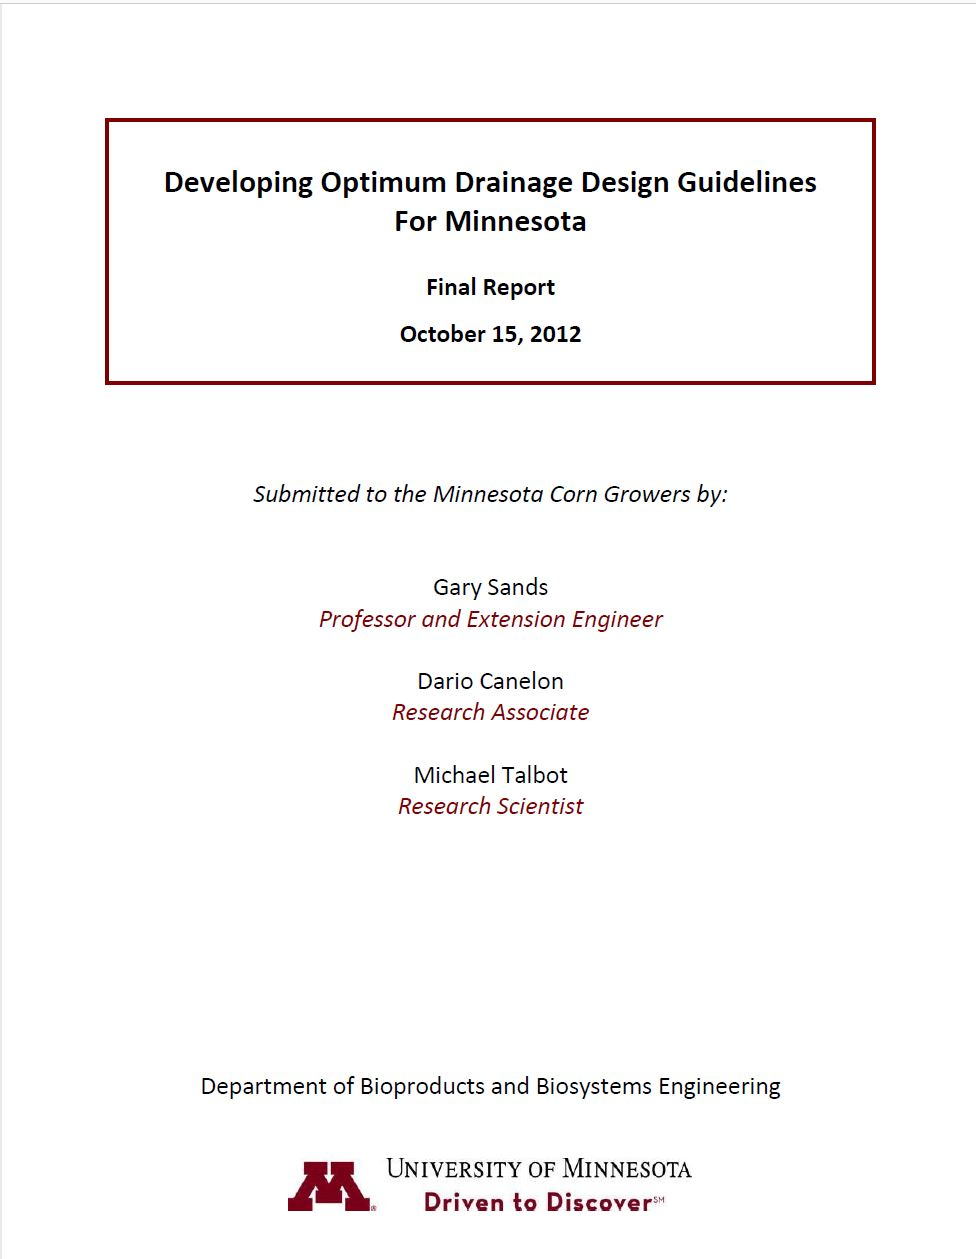 Developing Optimum Drainage Design Guidelines for Minnesota